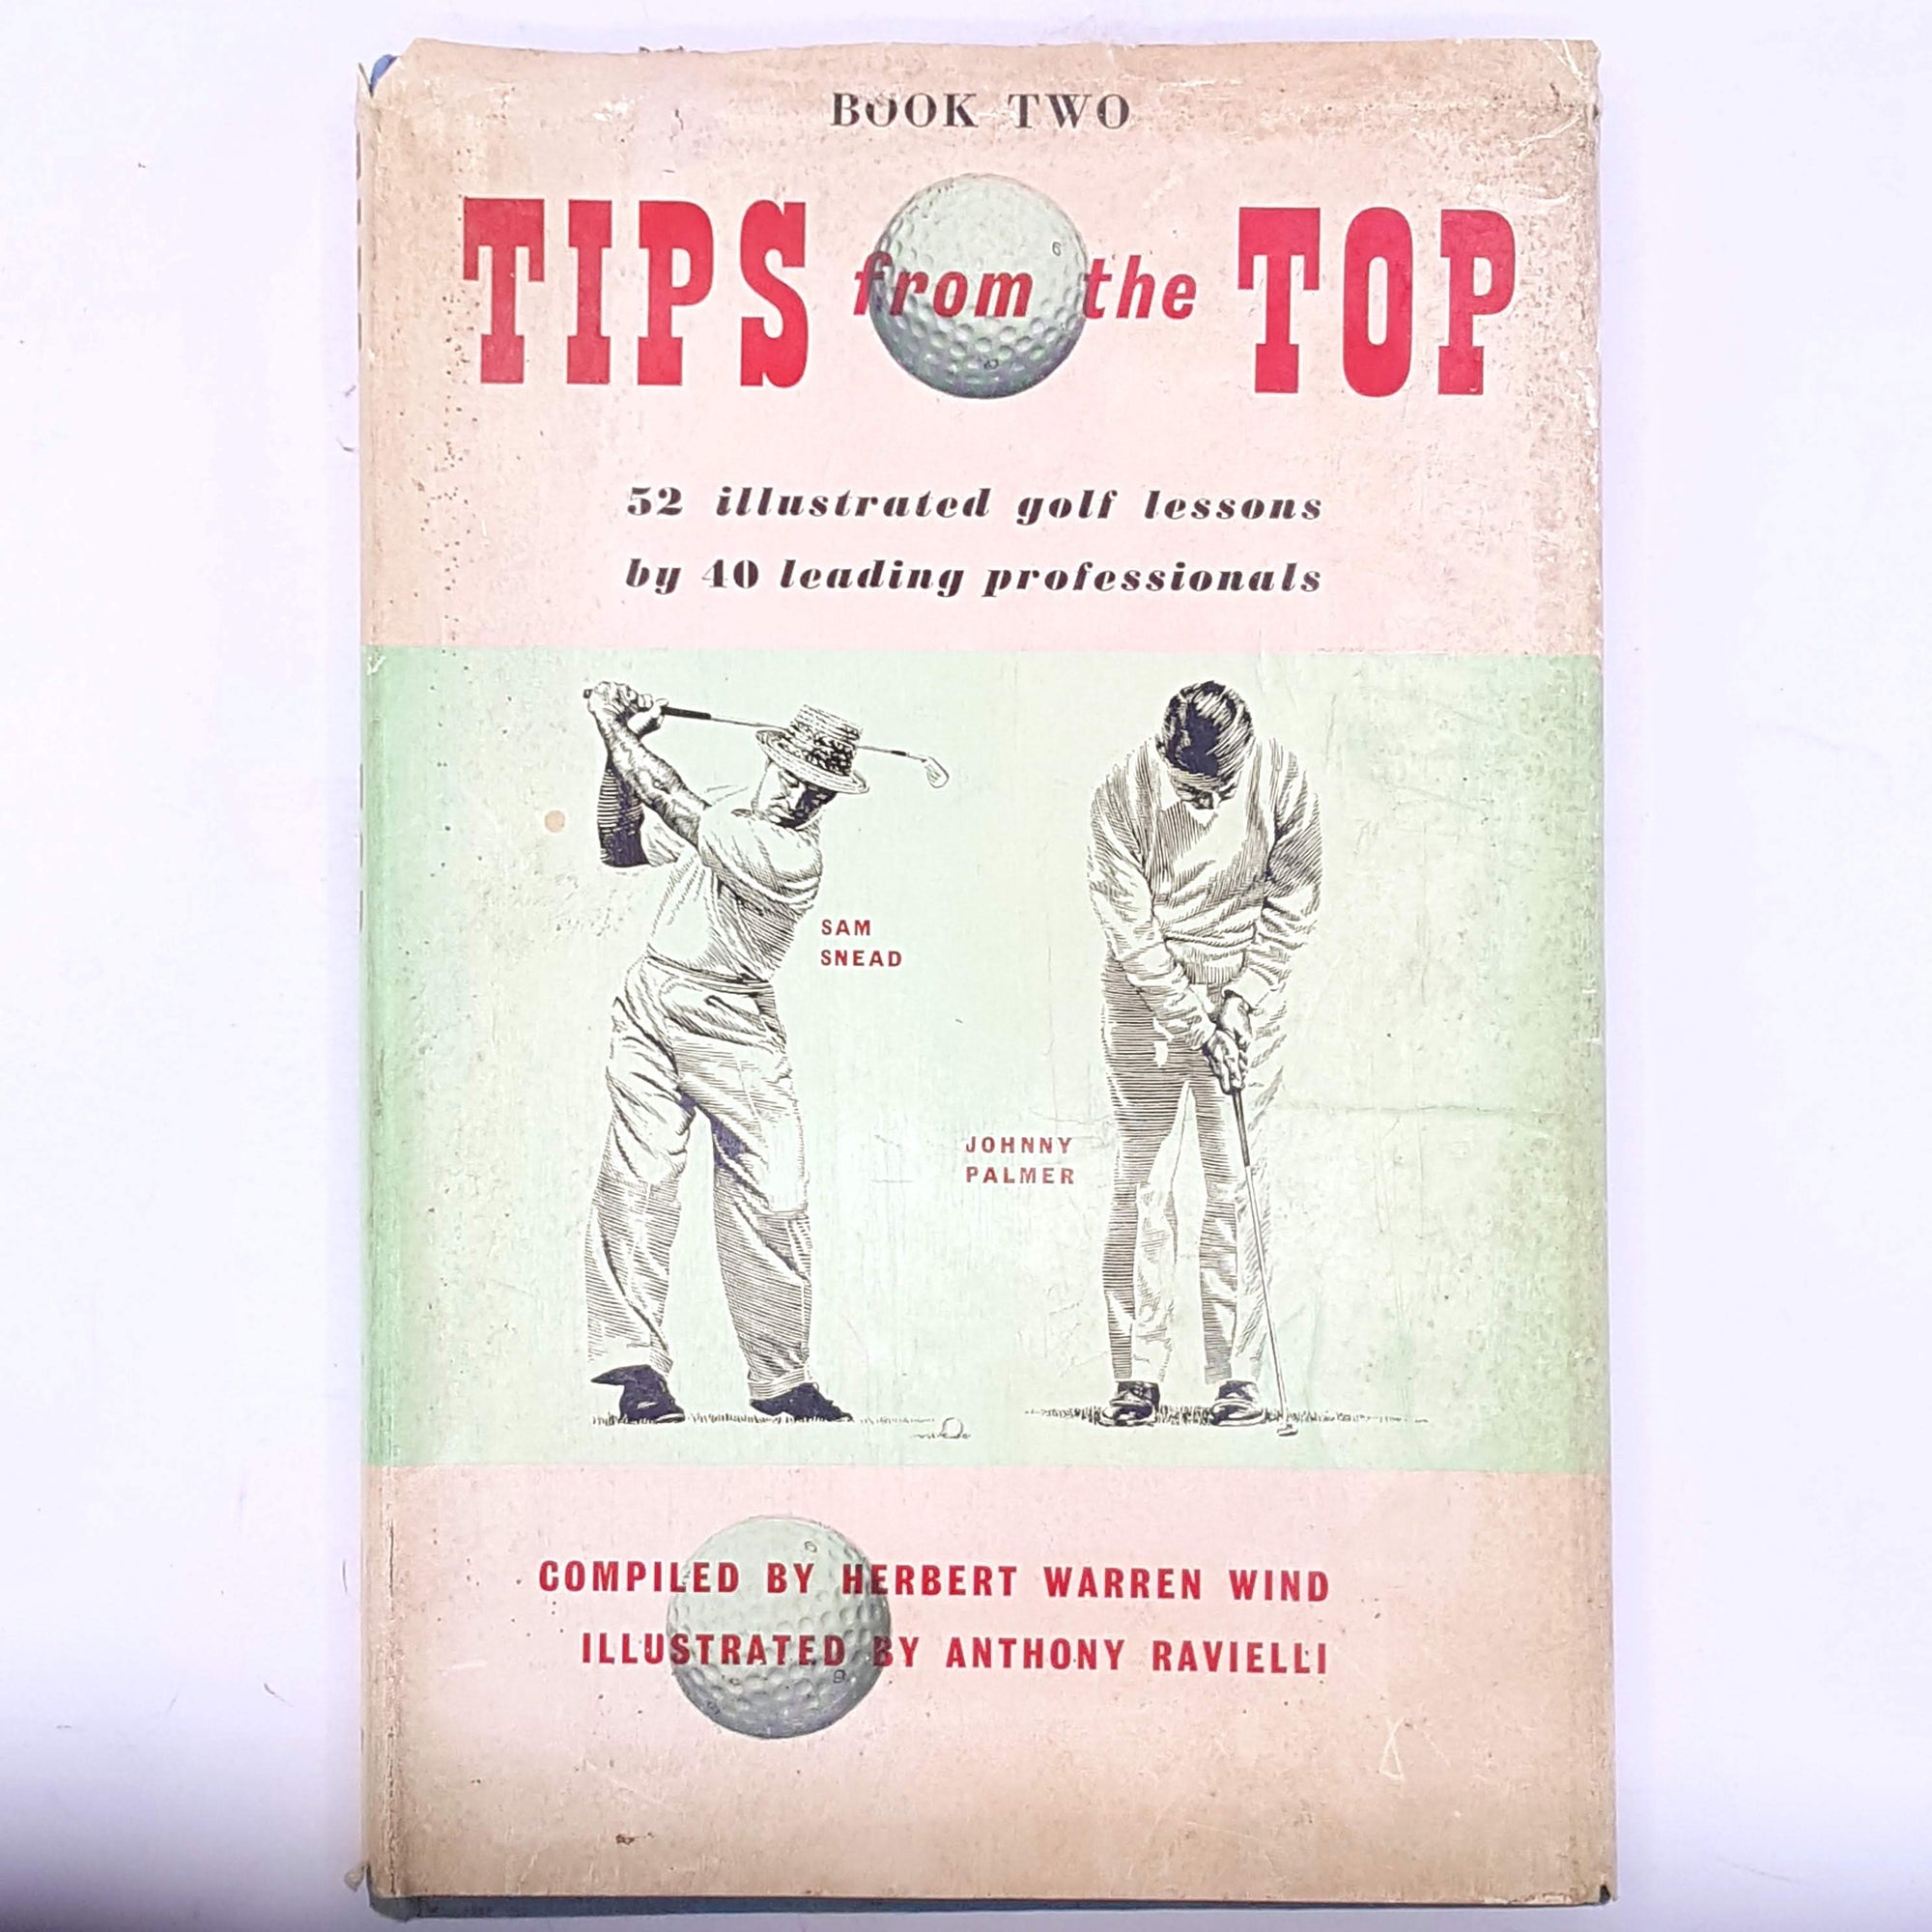 Tips From The Top by Herbert Warren Wind - Book Two